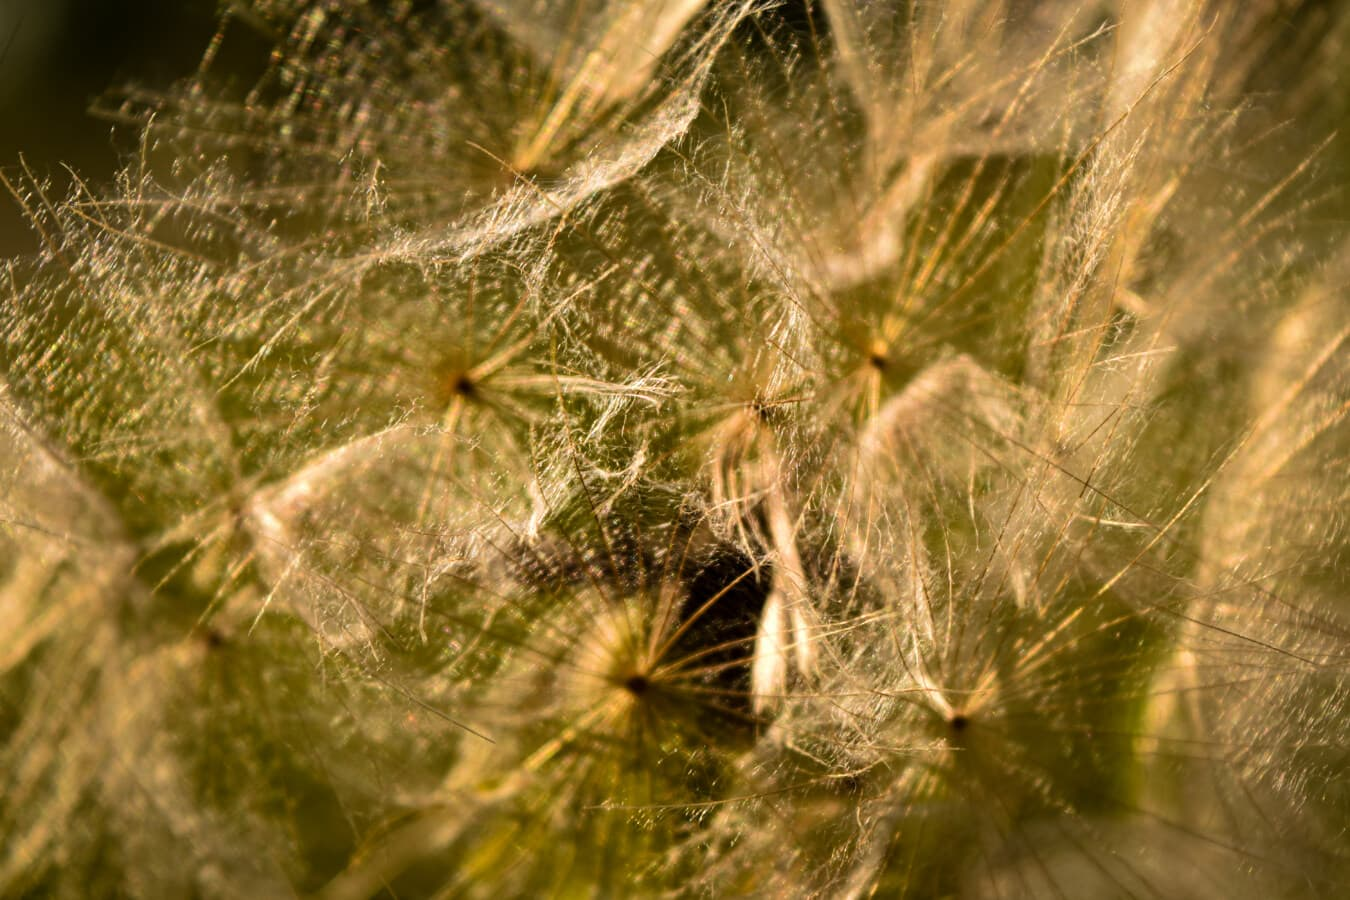 dandelion, macro, close-up, nature, flora, abstract, color, grass, summer, texture